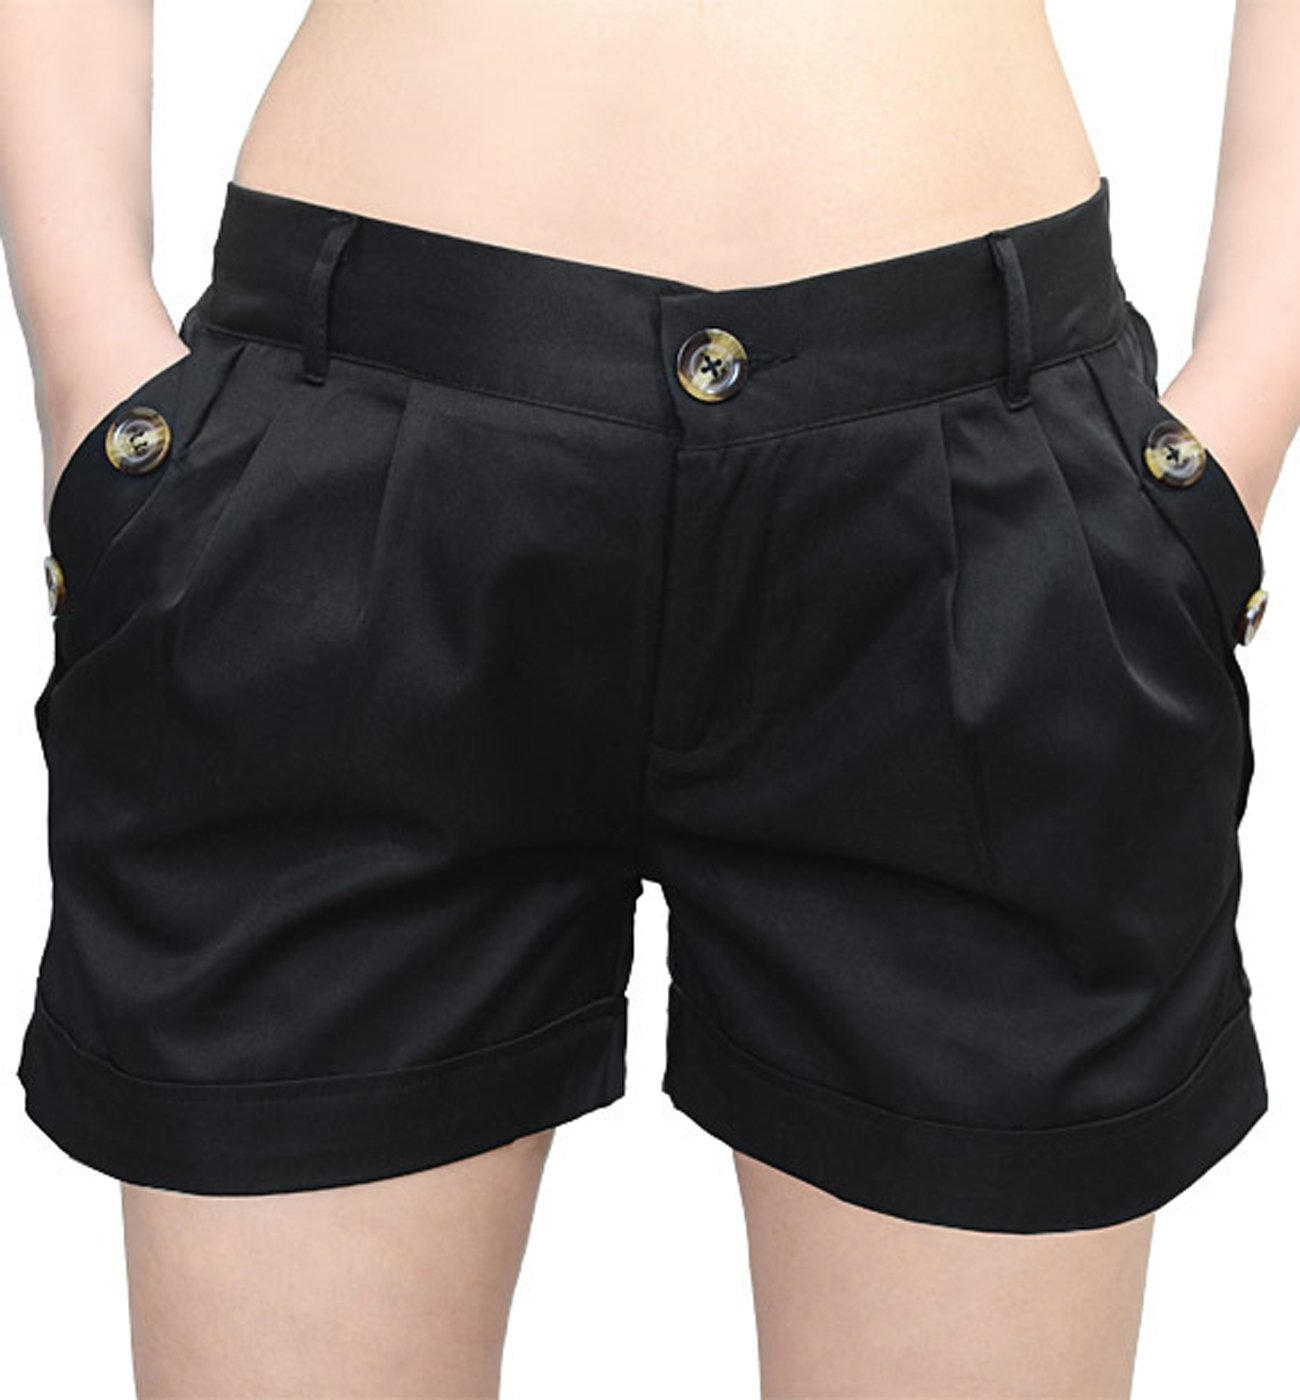 JOKHOO Women Summer Elastic Waist Twill Cargo Pocket Shorts Plus Size by JOKHOO